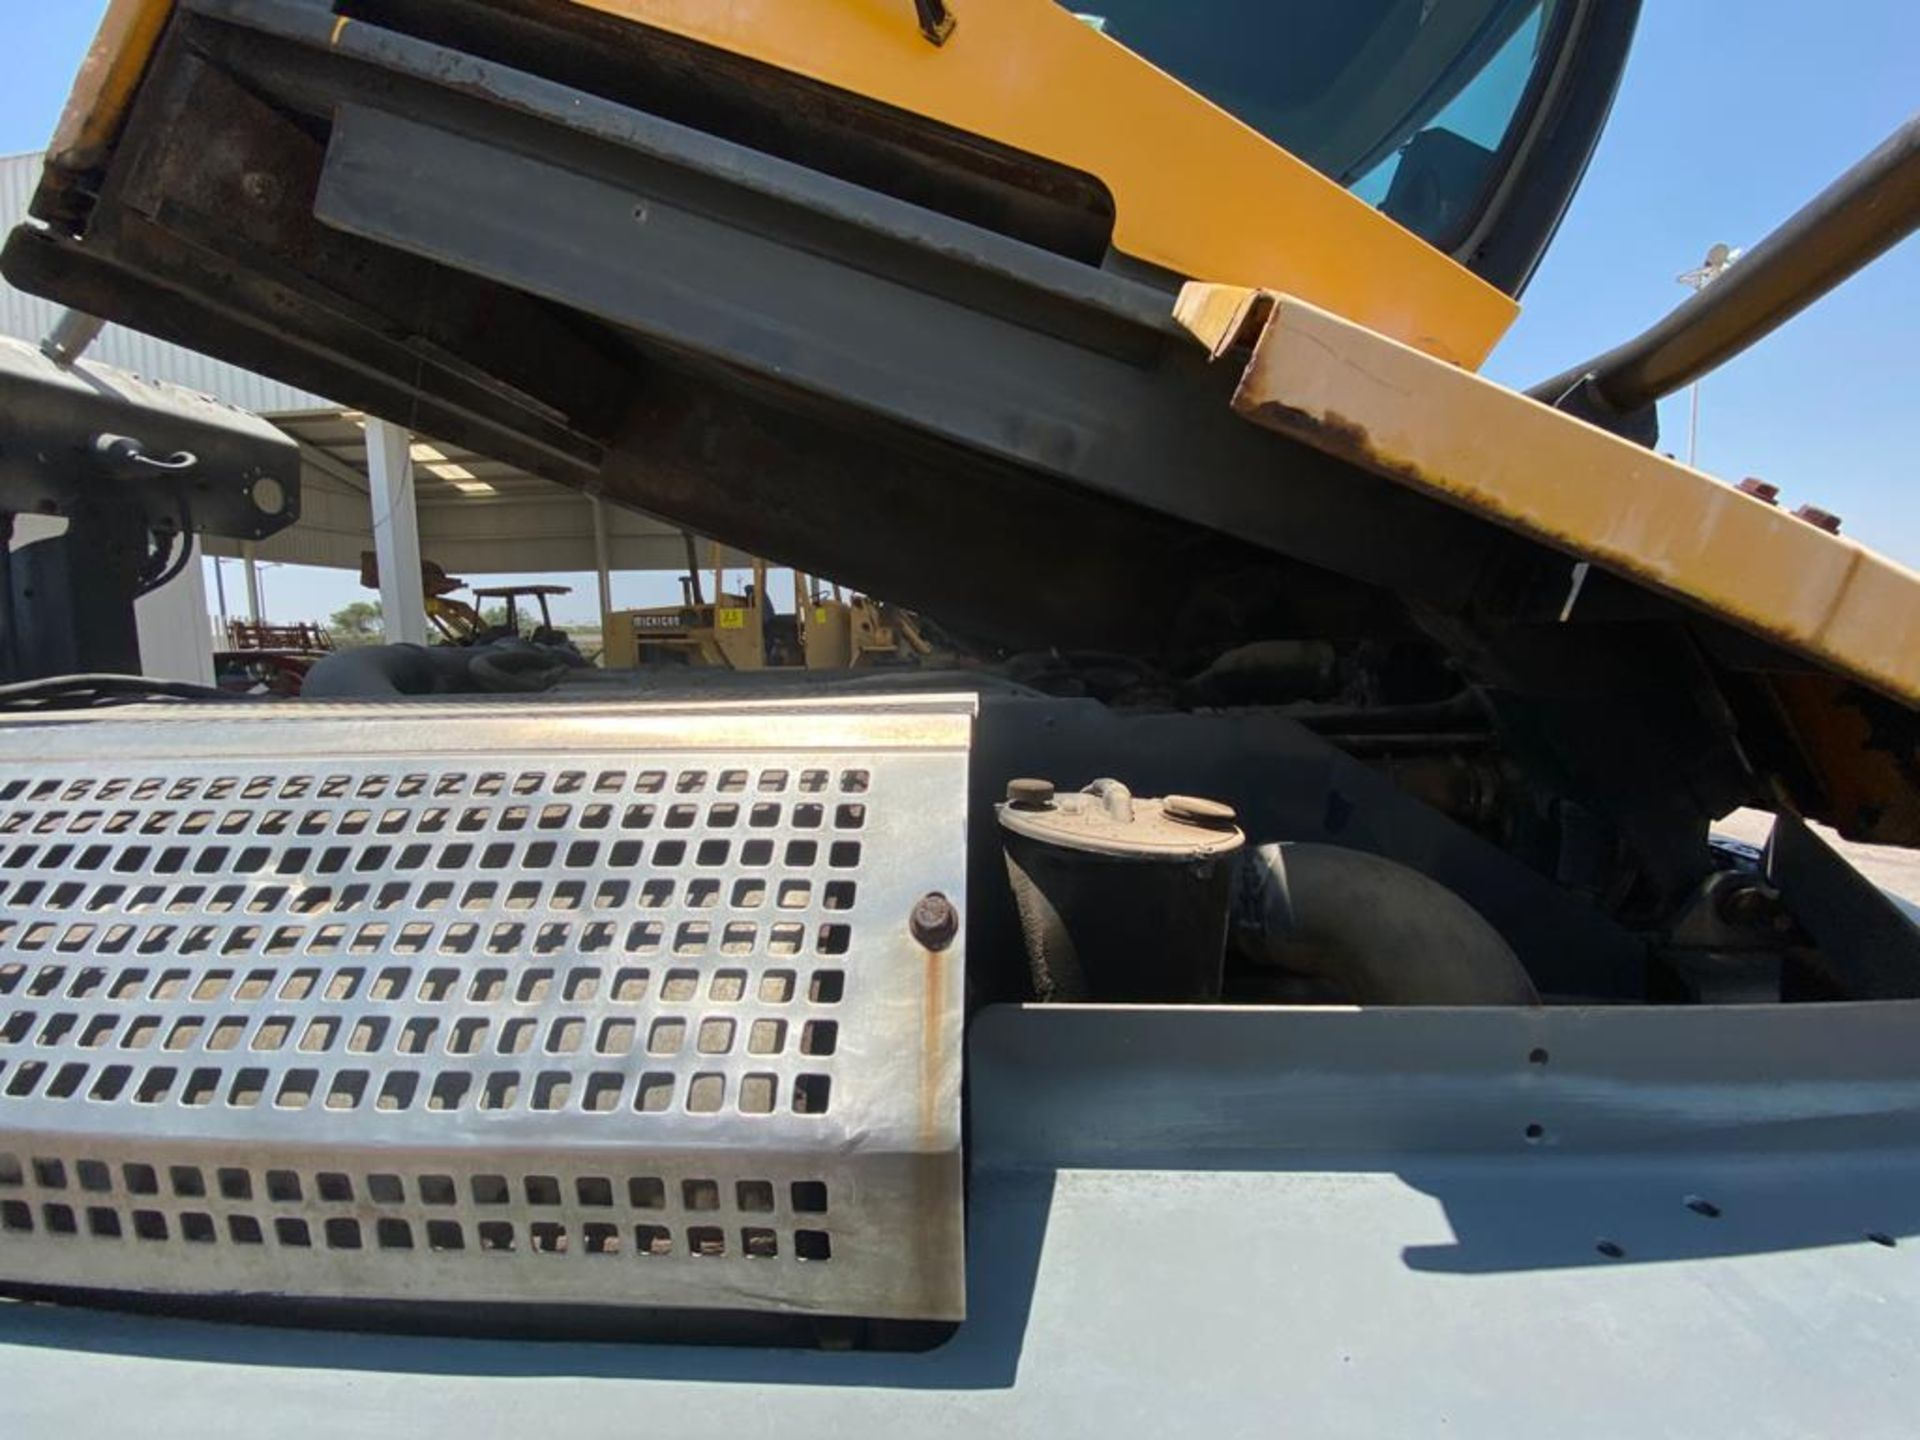 Terberg Capacity 2002 Terminal Tractor, automatic transmission, with Volvo motor - Image 44 of 57